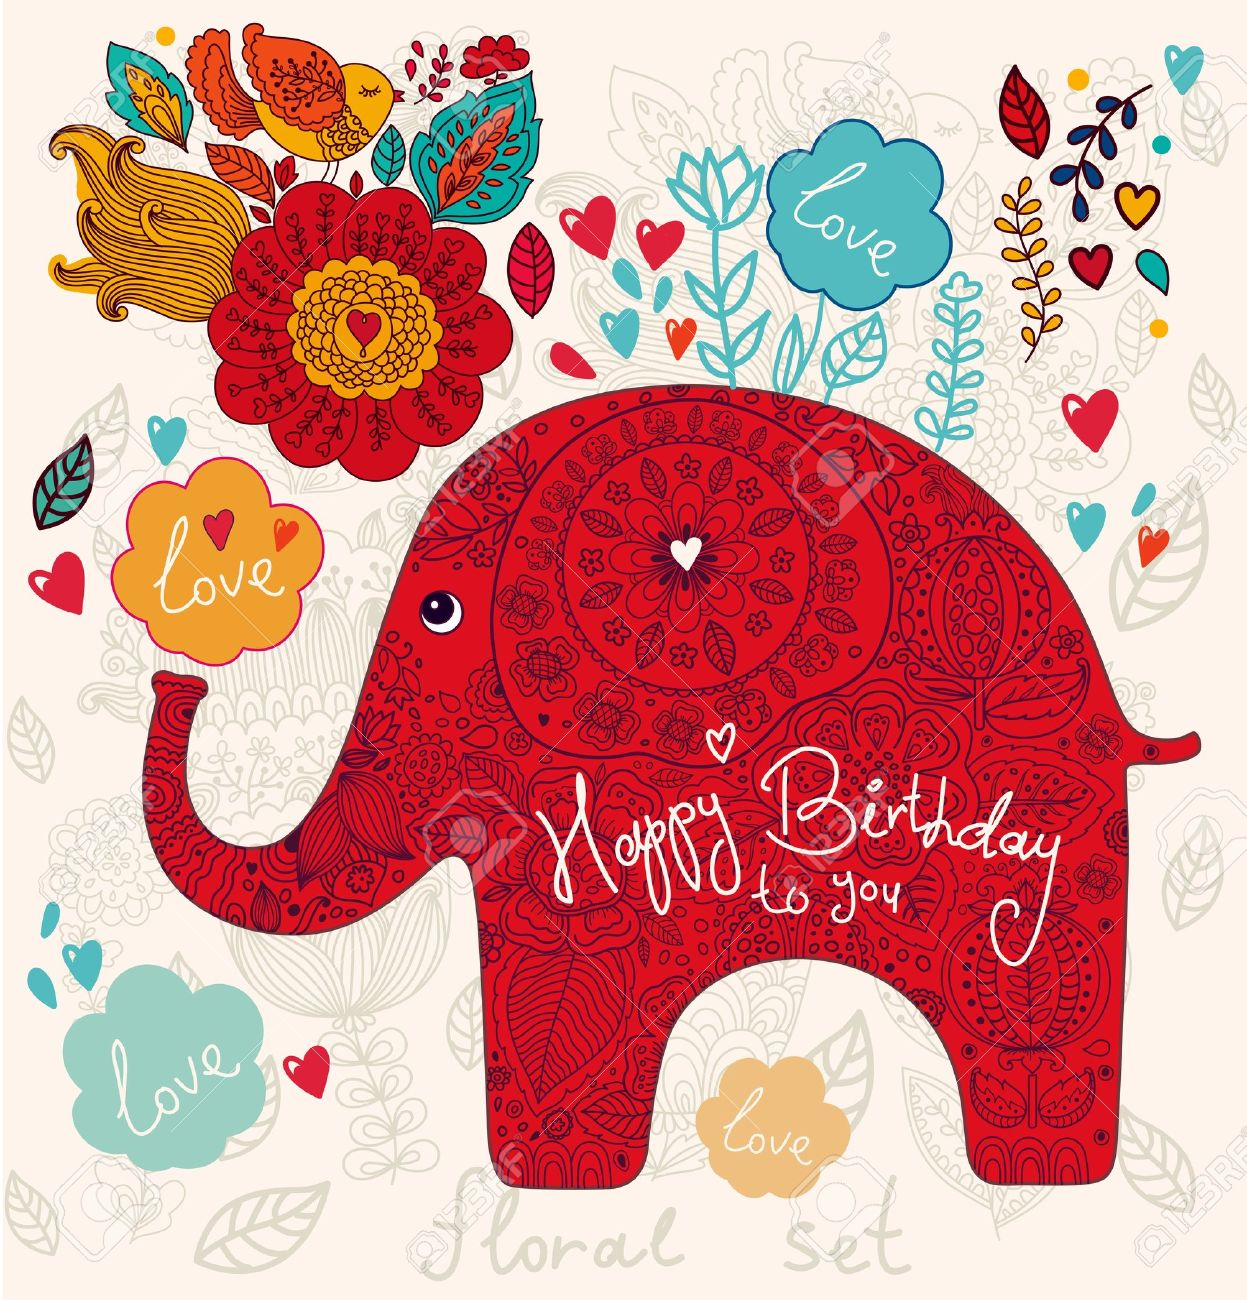 Happy Birthday SaraEve Swimming With Elephants Publications